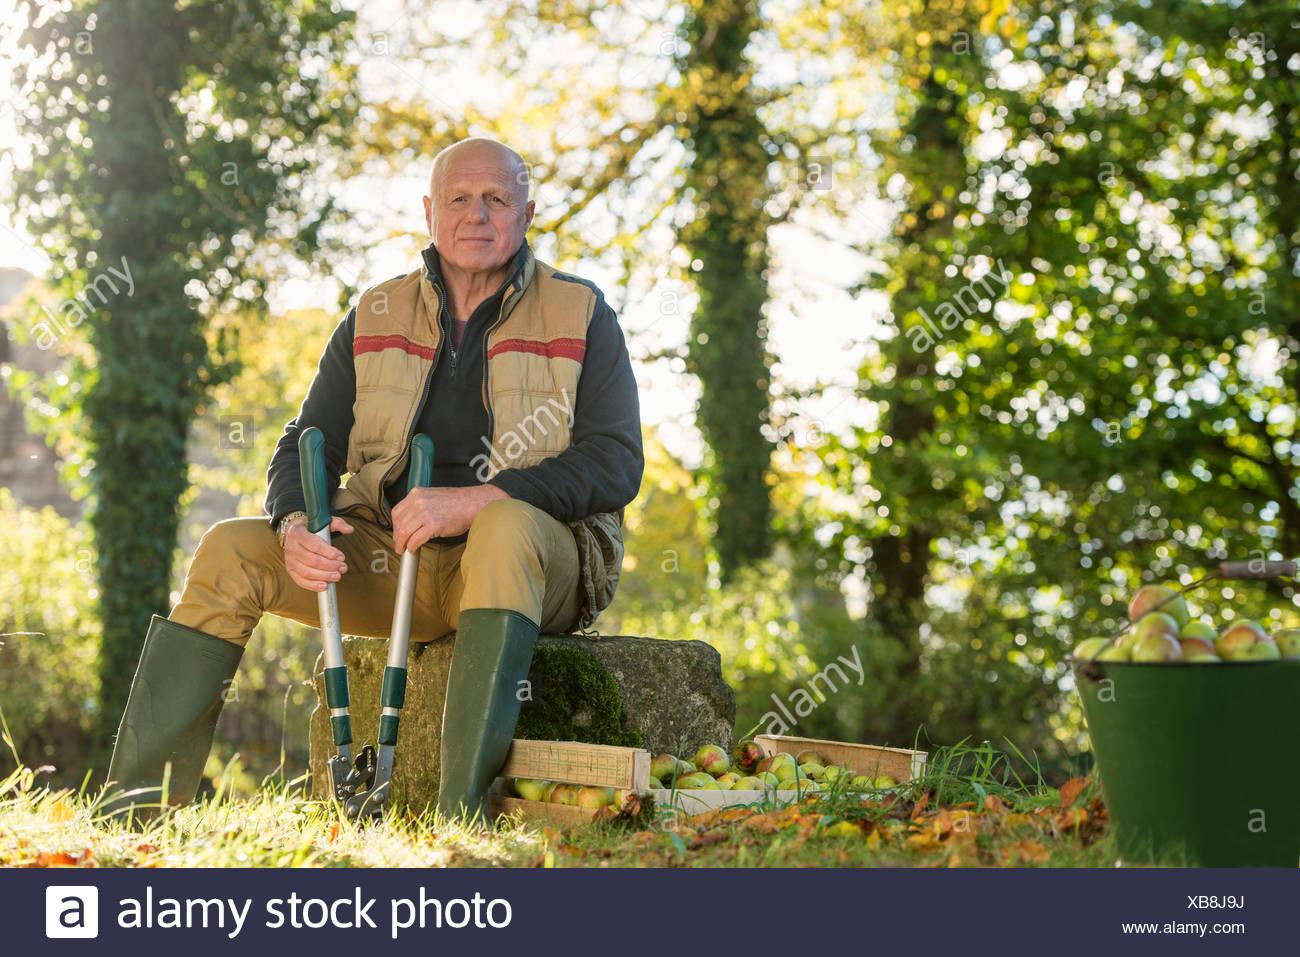 Portrait of senior man holding pruner - Stock Image